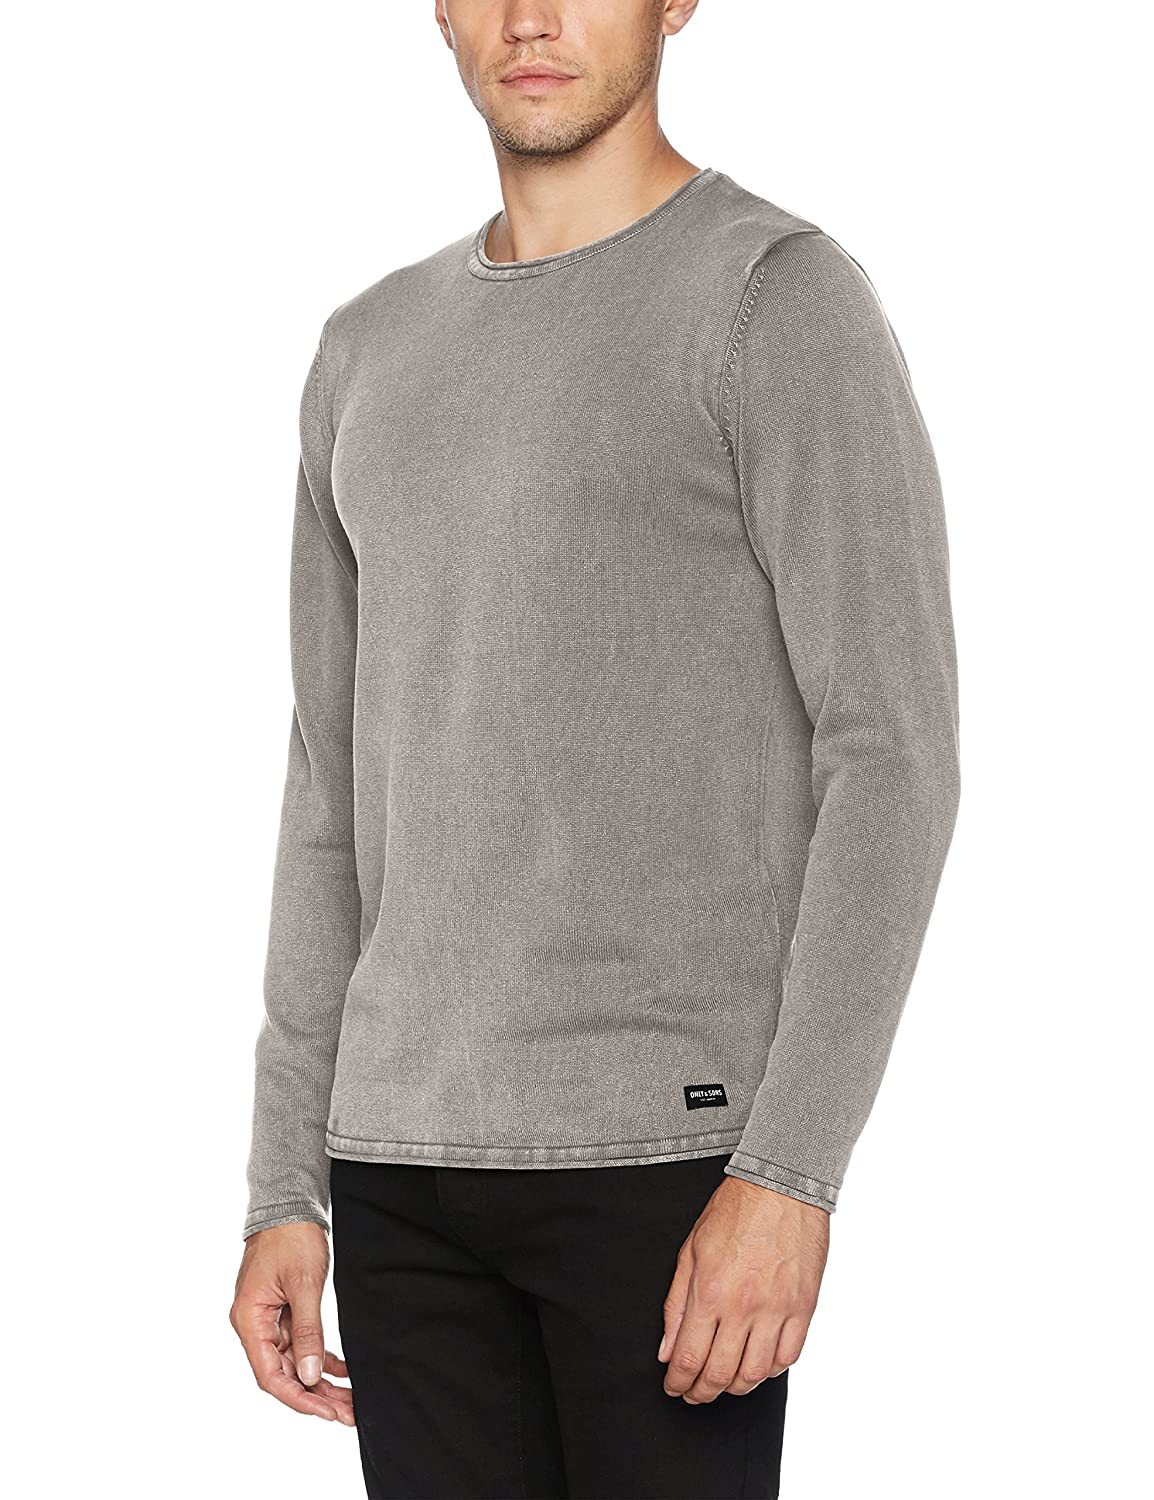 Only and Sons Mens Spot Crew Neck NOOS Long Sleeve Jumper Only & Sons Clearance Best Place Sale The Cheapest s8YyMf